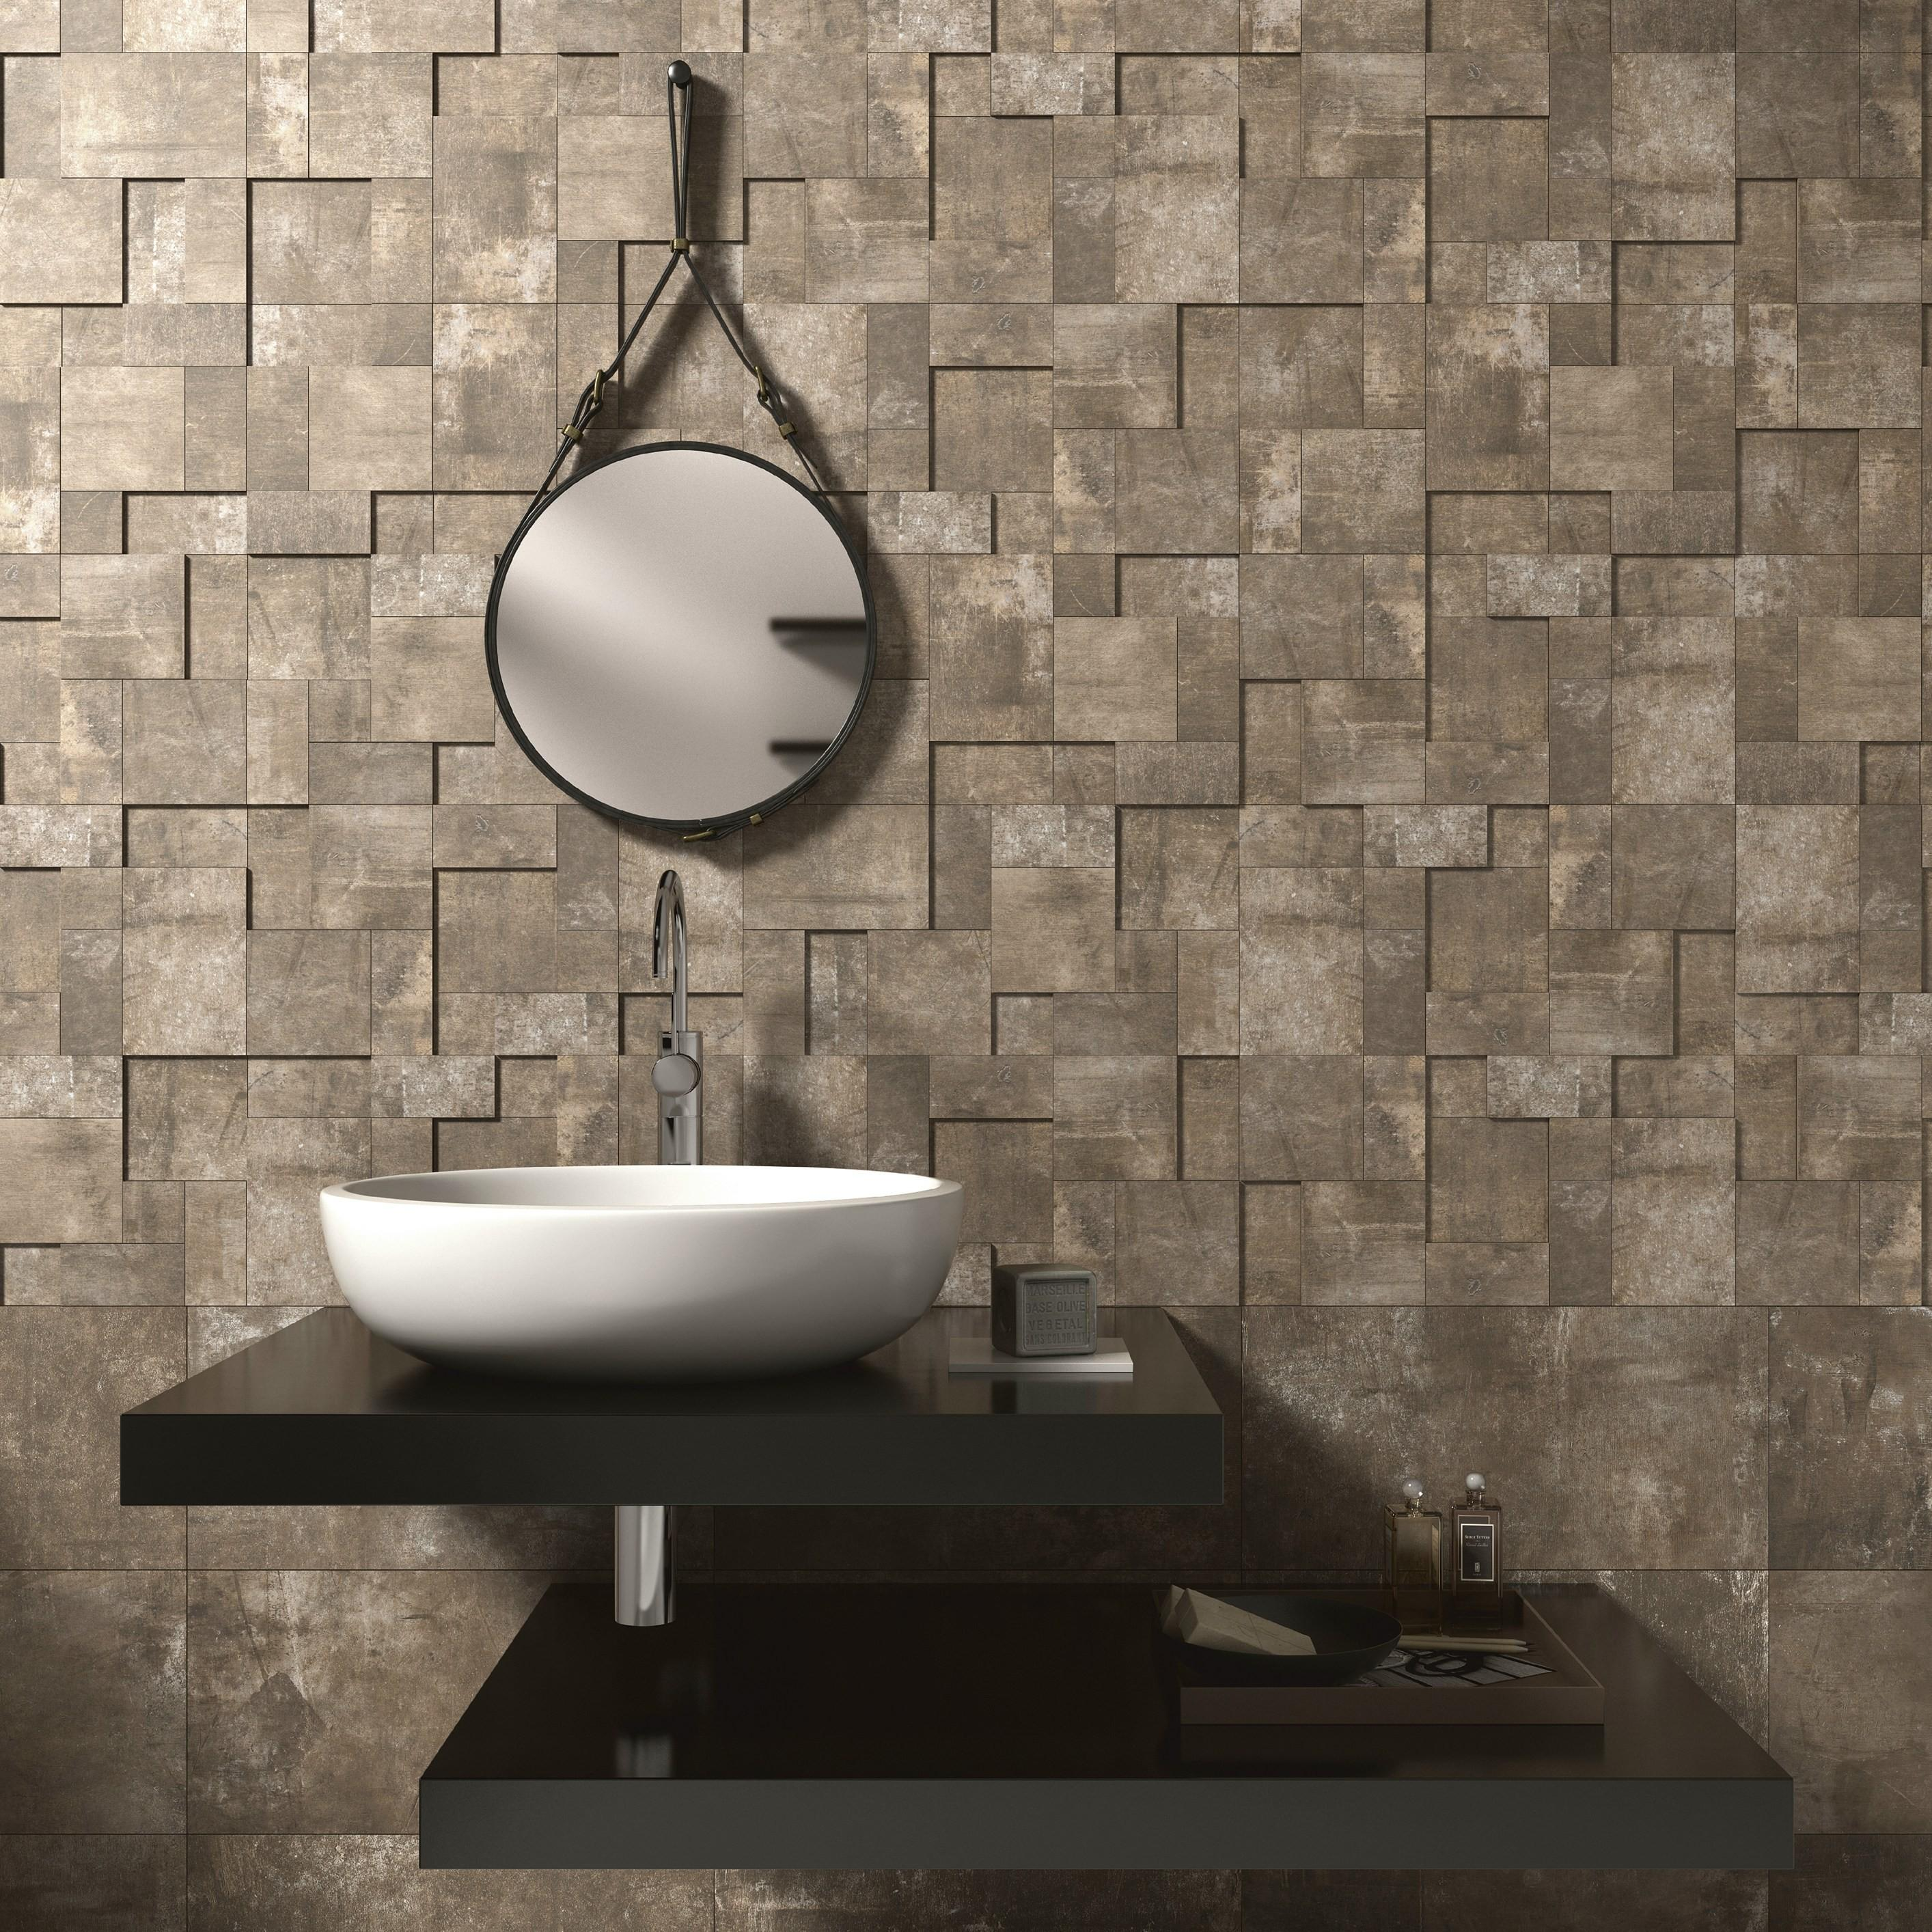 Ceramic Materials Wall Floor Tiles Plant Collection